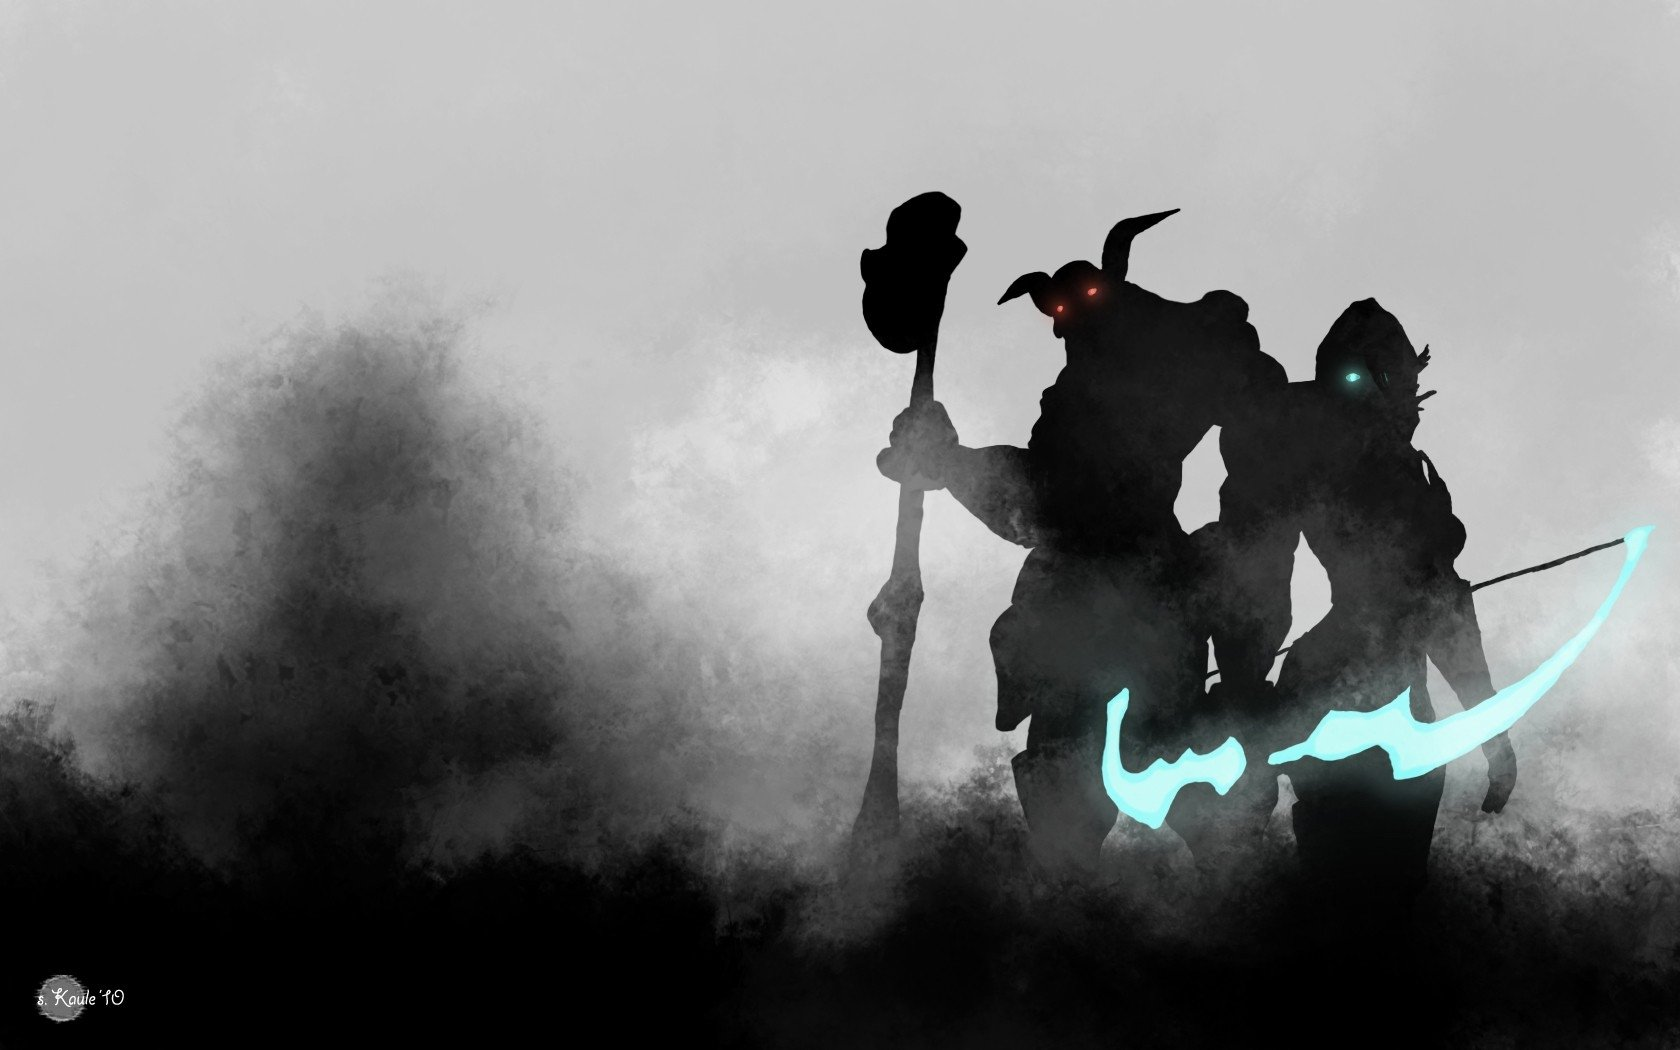 Video Game - League Of Legends  Ashe (League Of Legends) Nasus (League Of Legends) Wallpaper